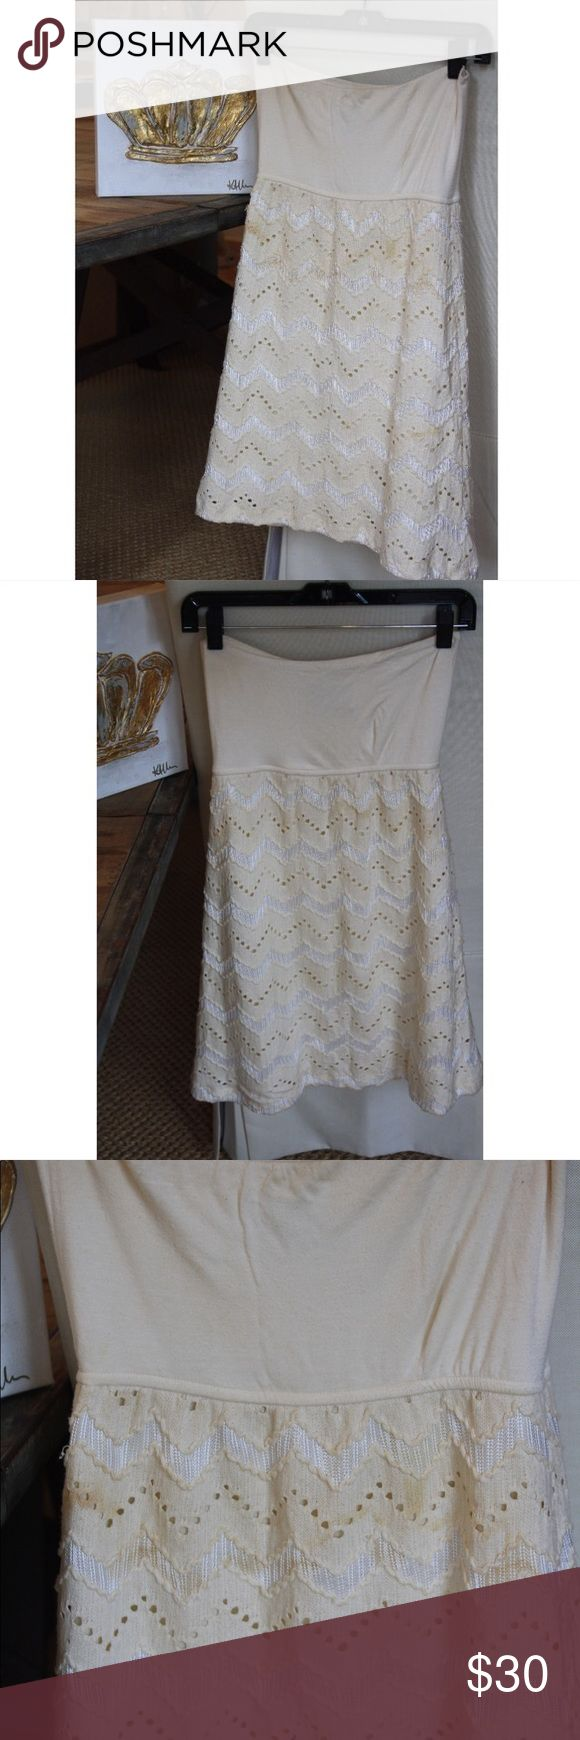 Judith March white chevron strapless dress Used but still in pretty good condition!! Gorgeous dress. Great for summer. A little bit of pilling on the top part but not very noticeable especially when it is on. I did not find a size on the dress but assuming it is a Small because that was my size when I bought the dress Judith March Dresses Mini